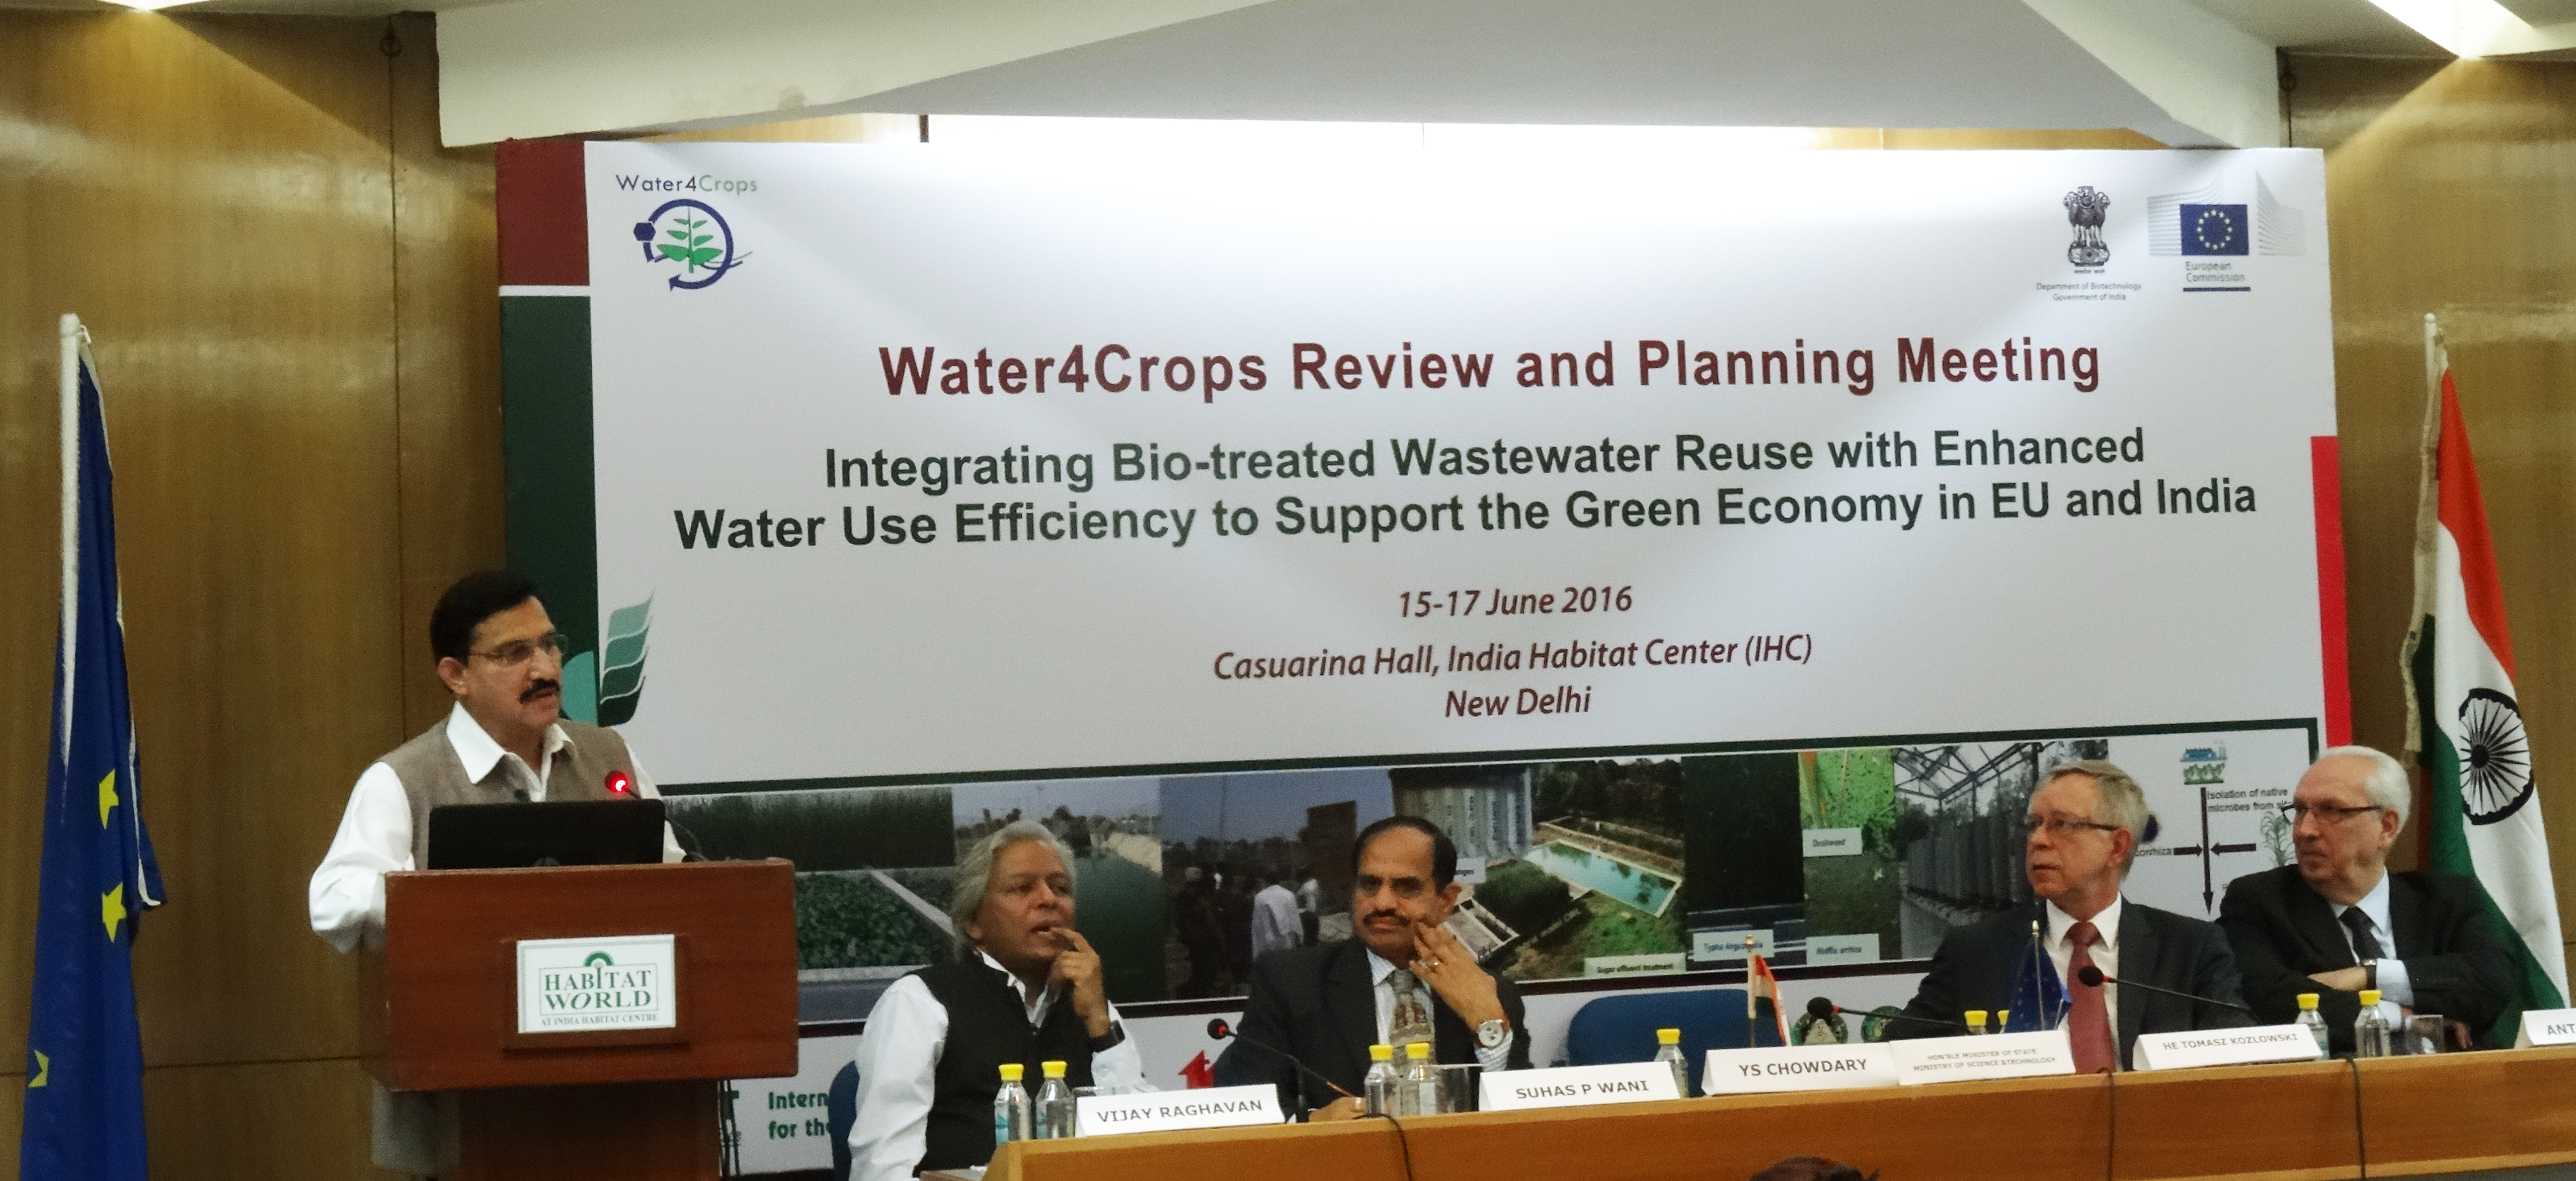 Water4Crops Review and Planning Meeting. (Photo: IDC, ICRISAT)